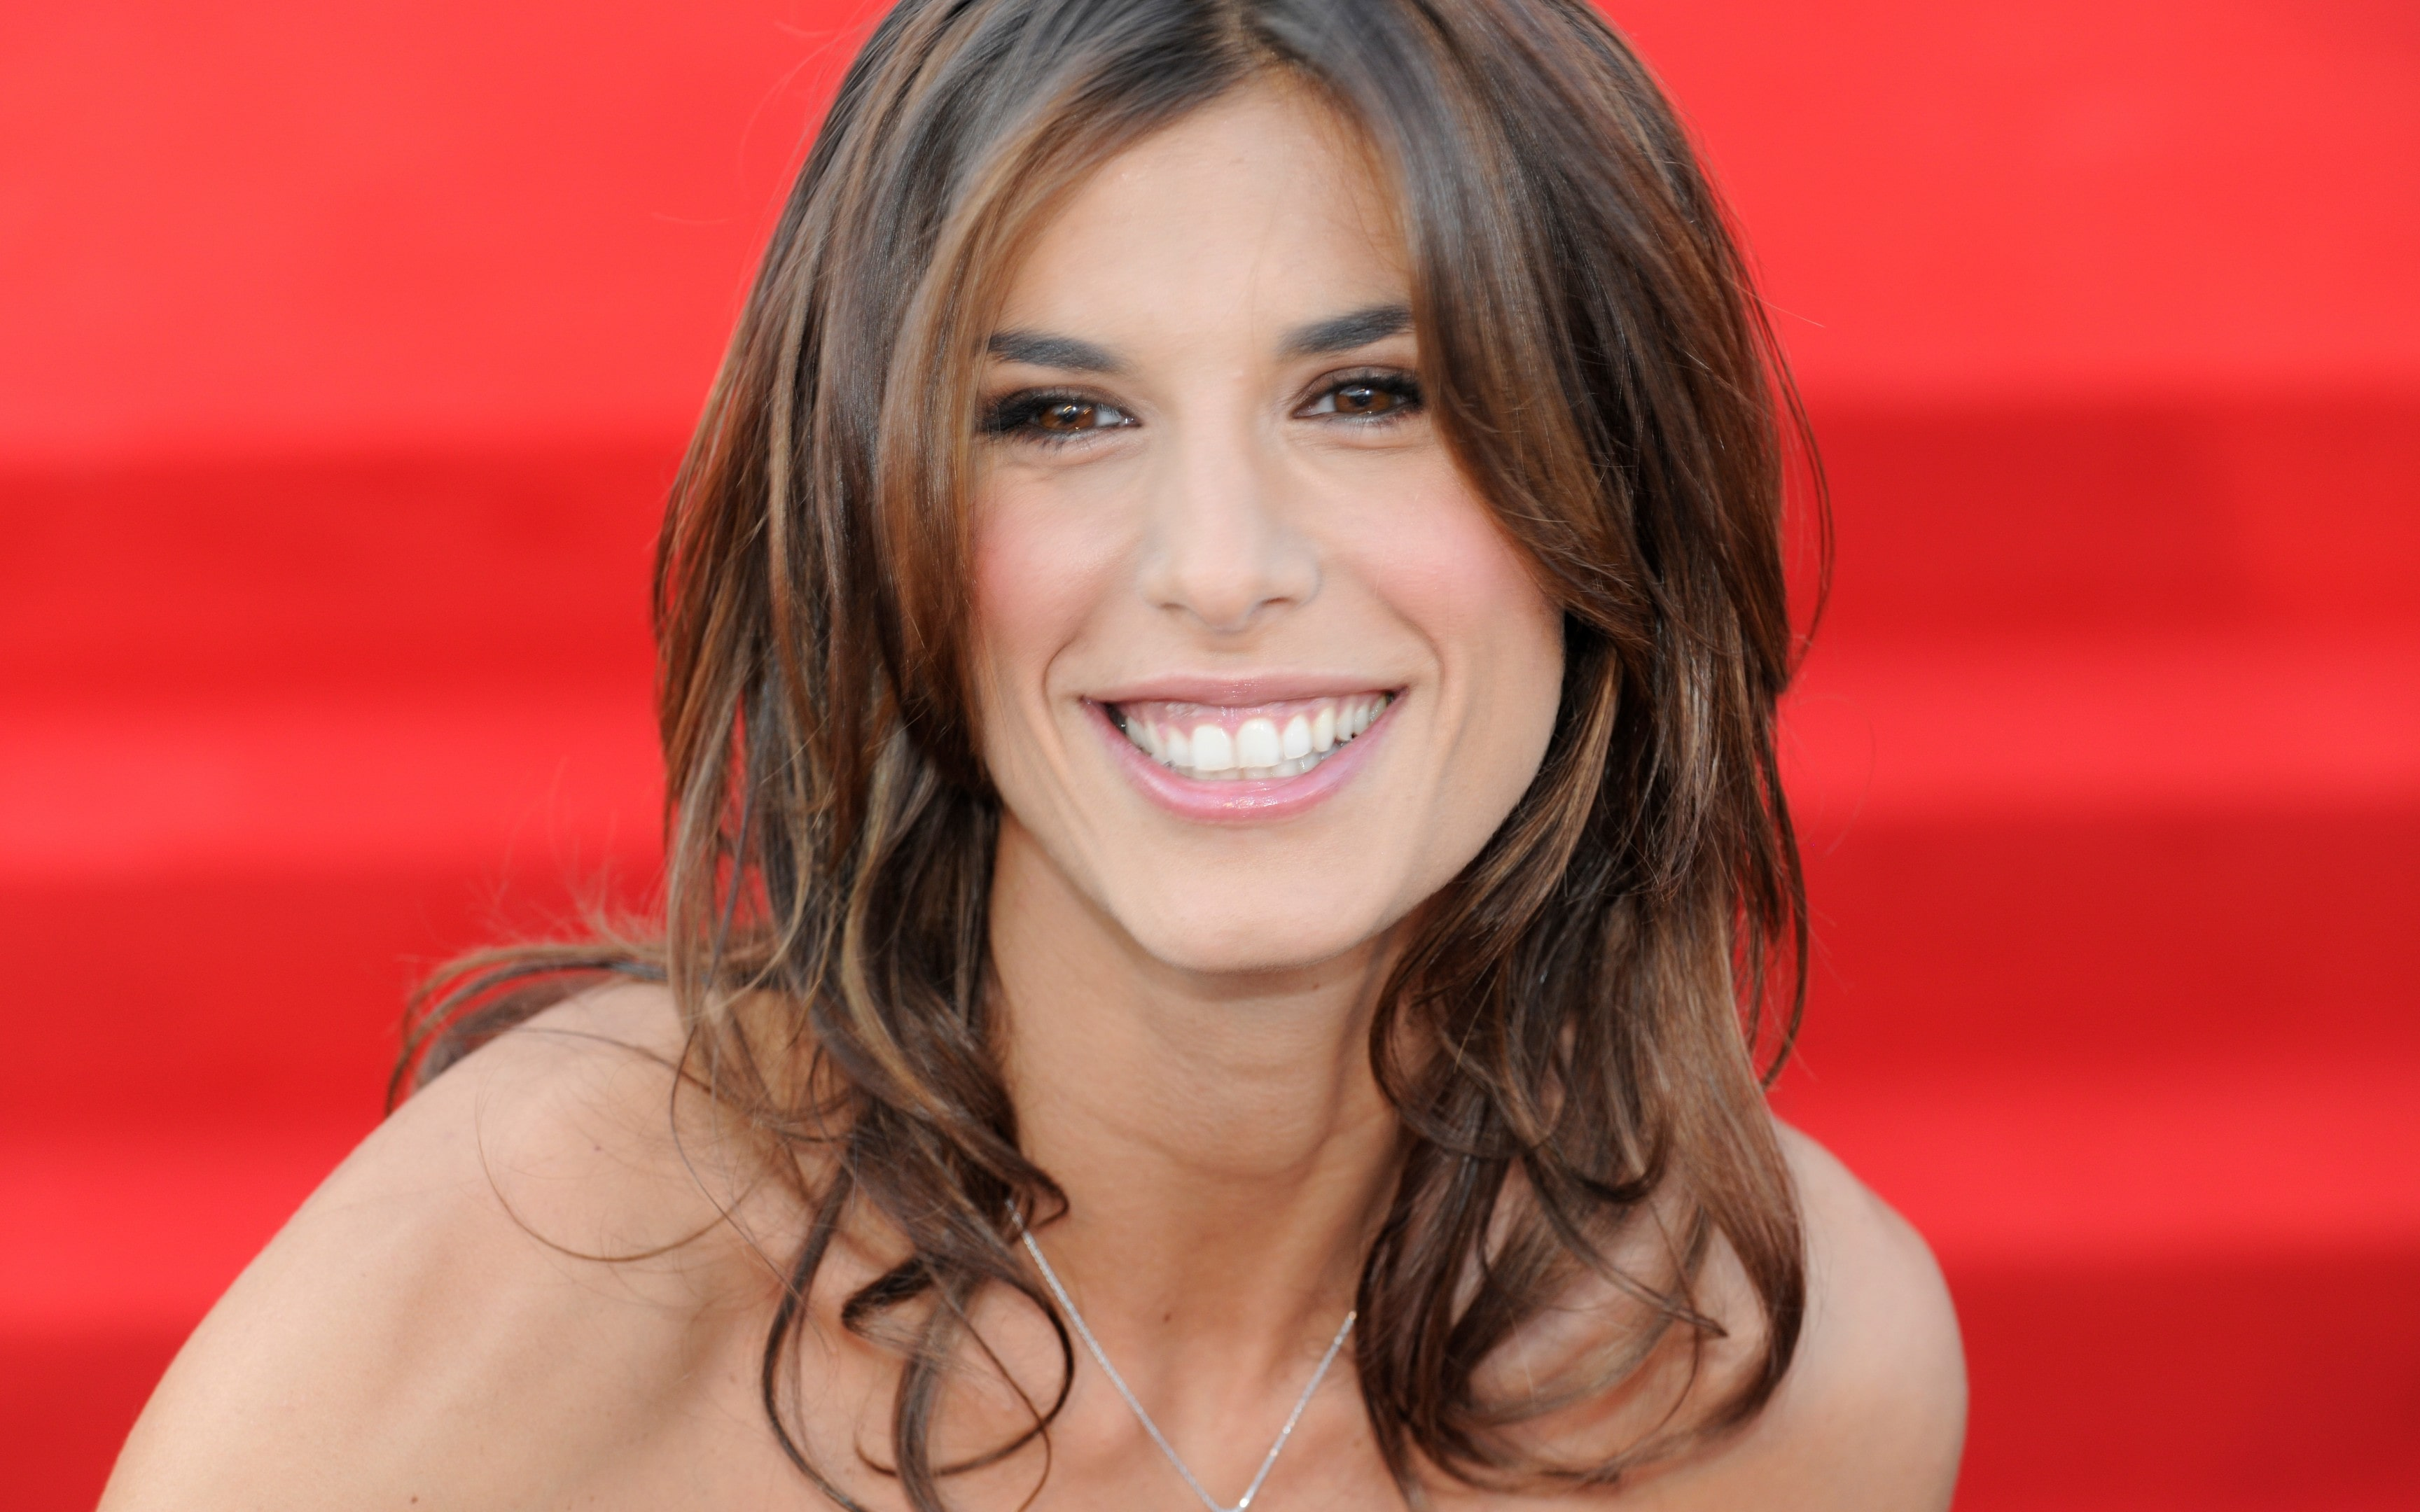 Elisabetta Canalis Backgrounds